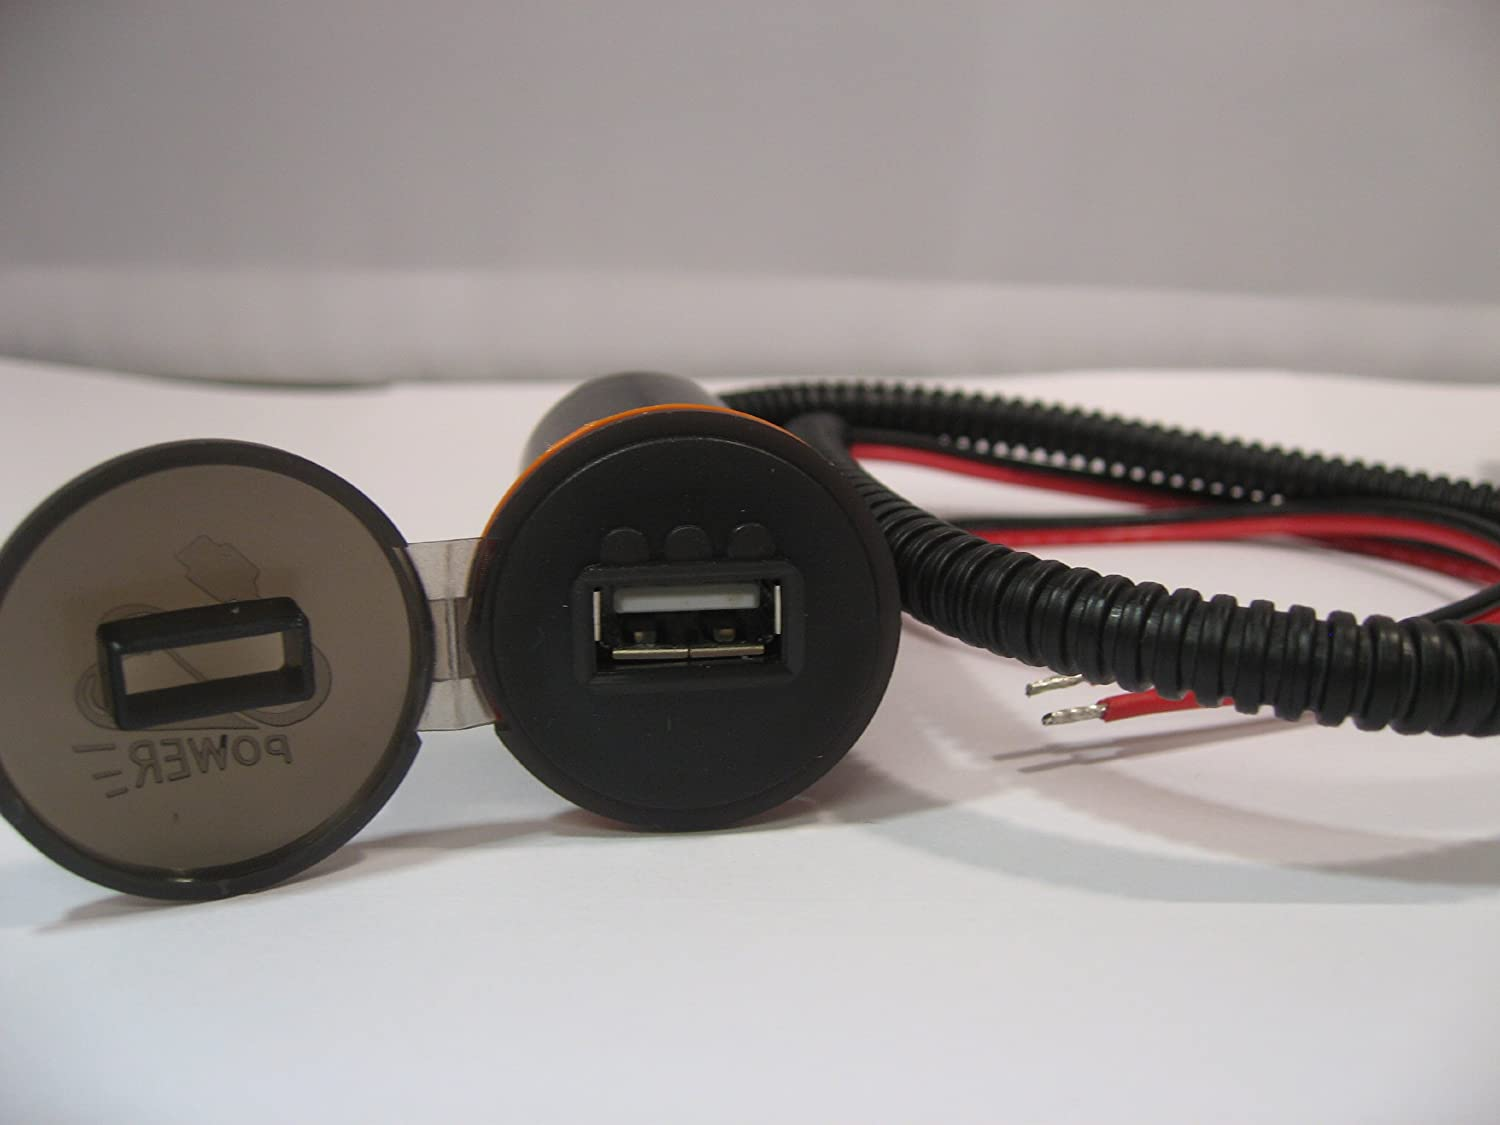 Shkusb002 SharkMotorcycleAudio Motorcycle Usb Power Outlet w//Build-in Led Battery Indicator No Drilling Required